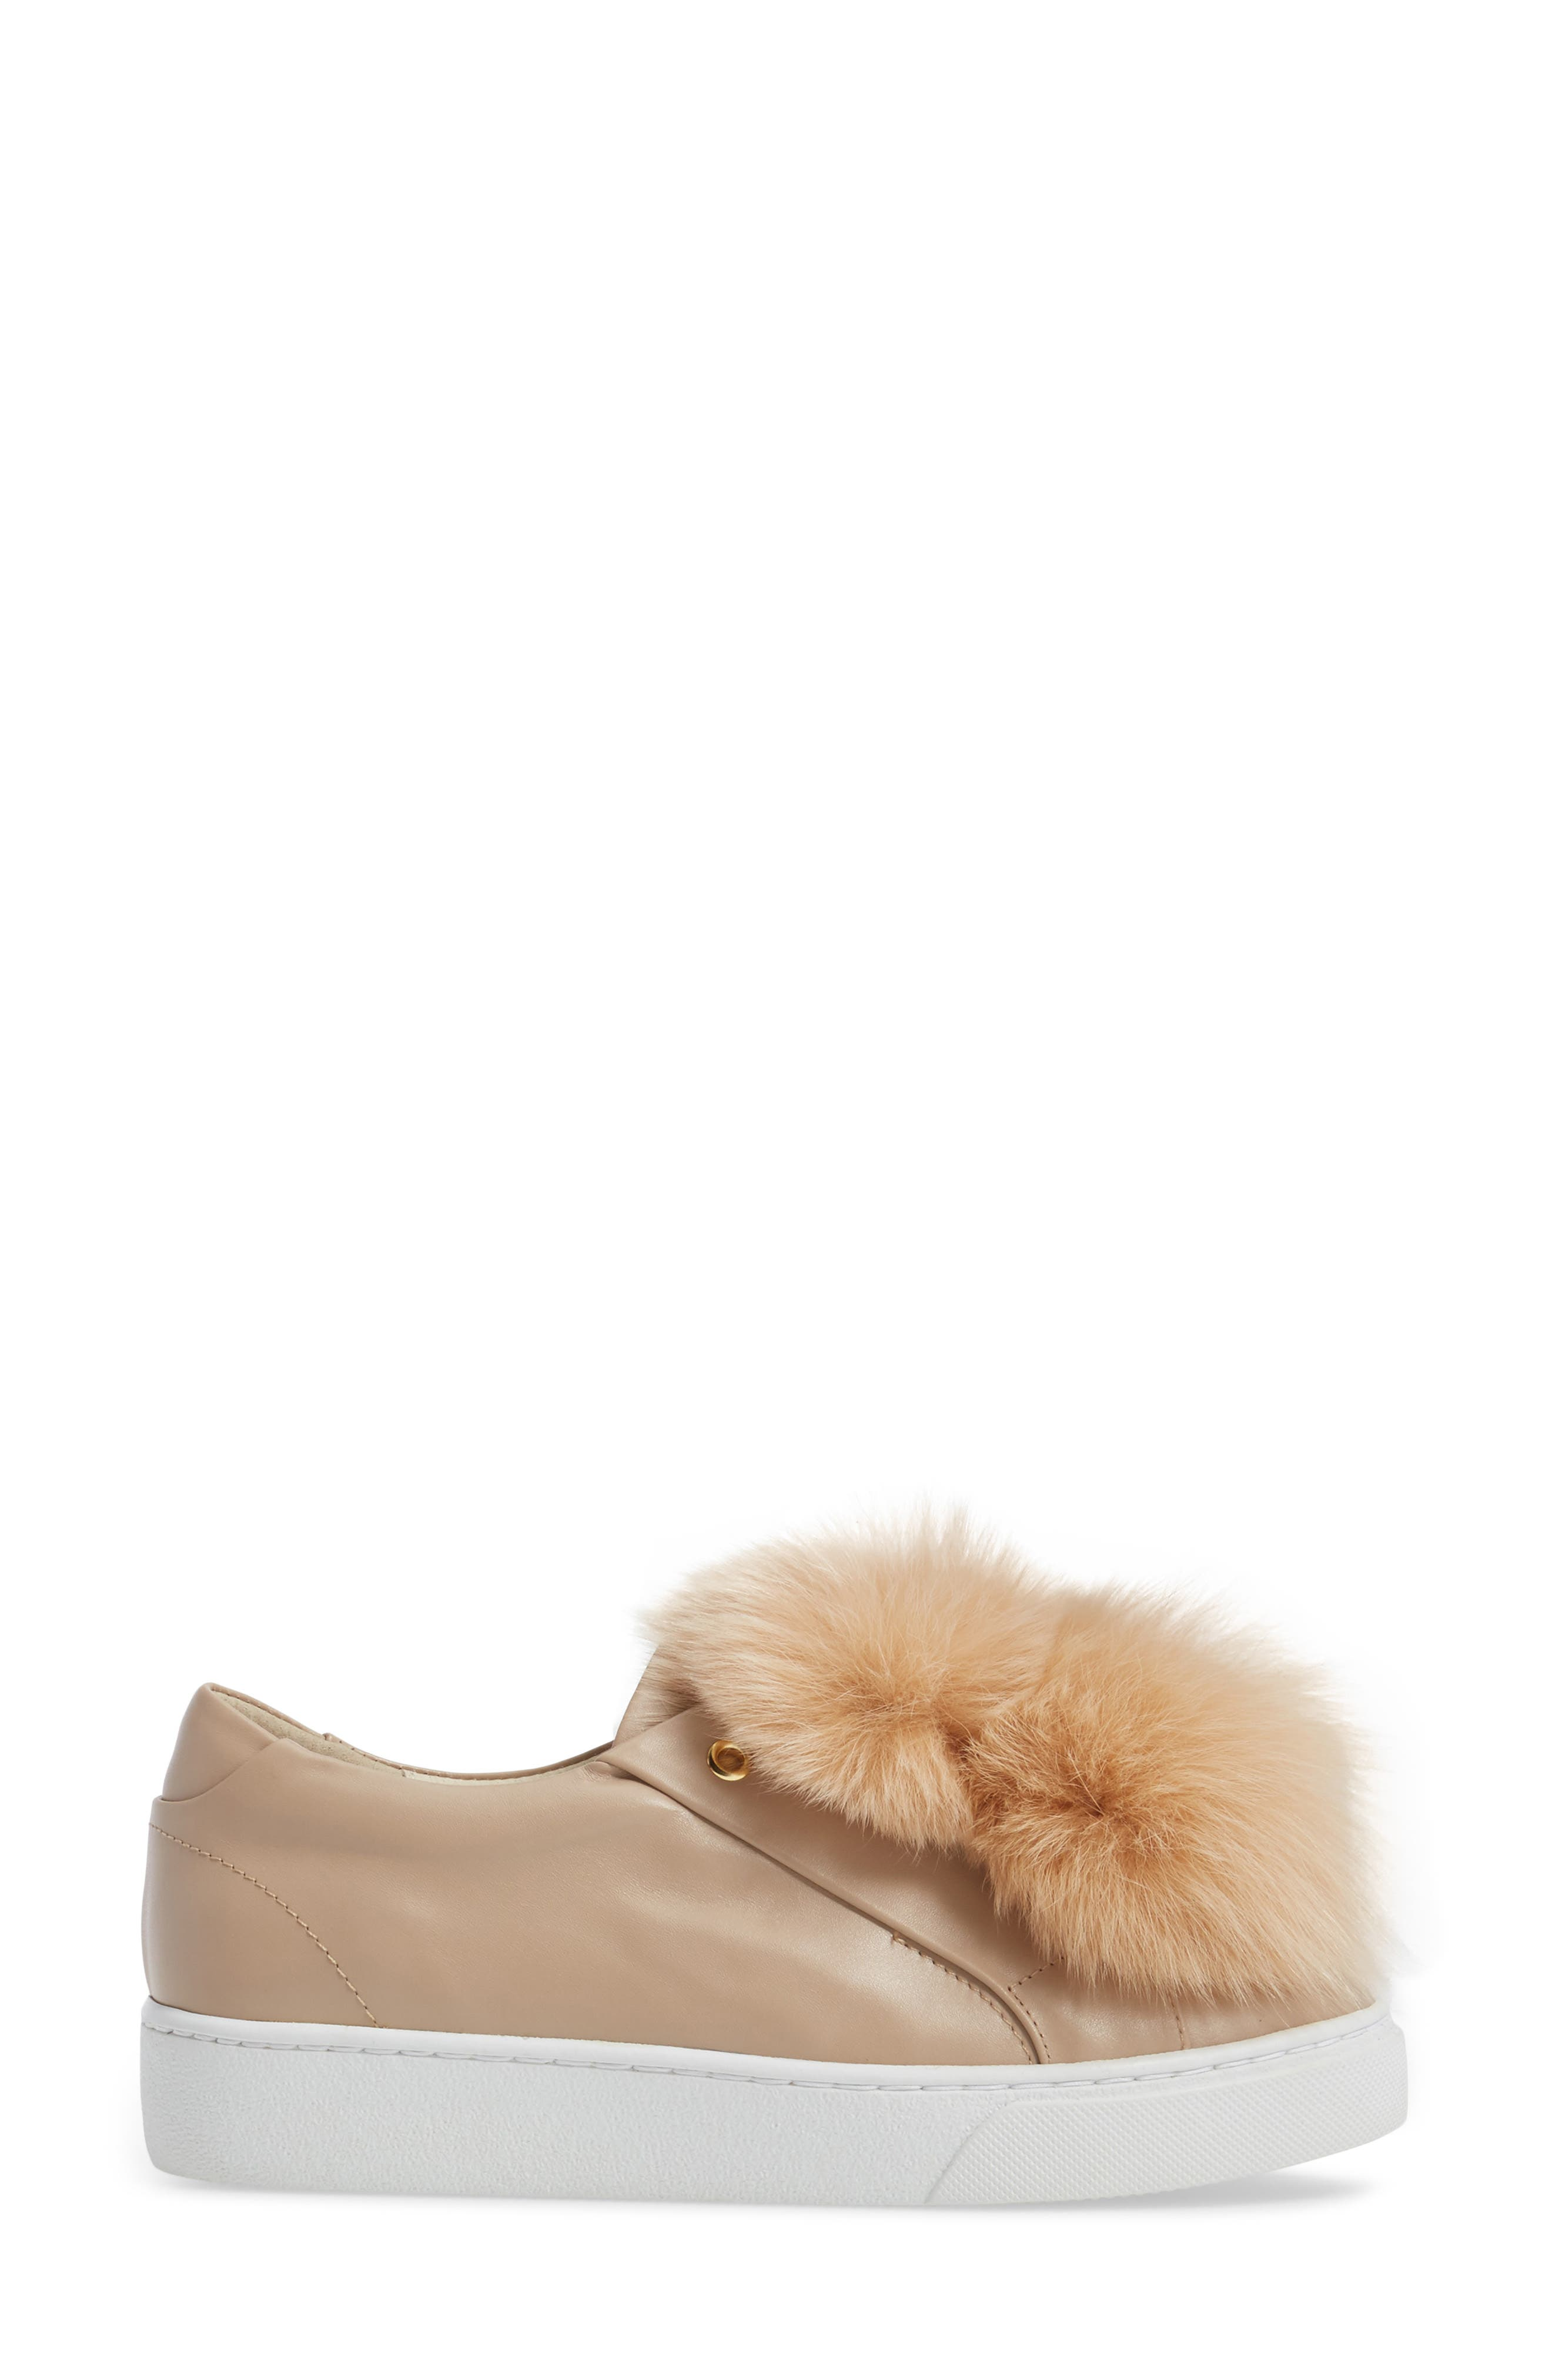 Arian Genuine Fox Fur Trim Sneaker,                             Alternate thumbnail 3, color,                             Nude Leather